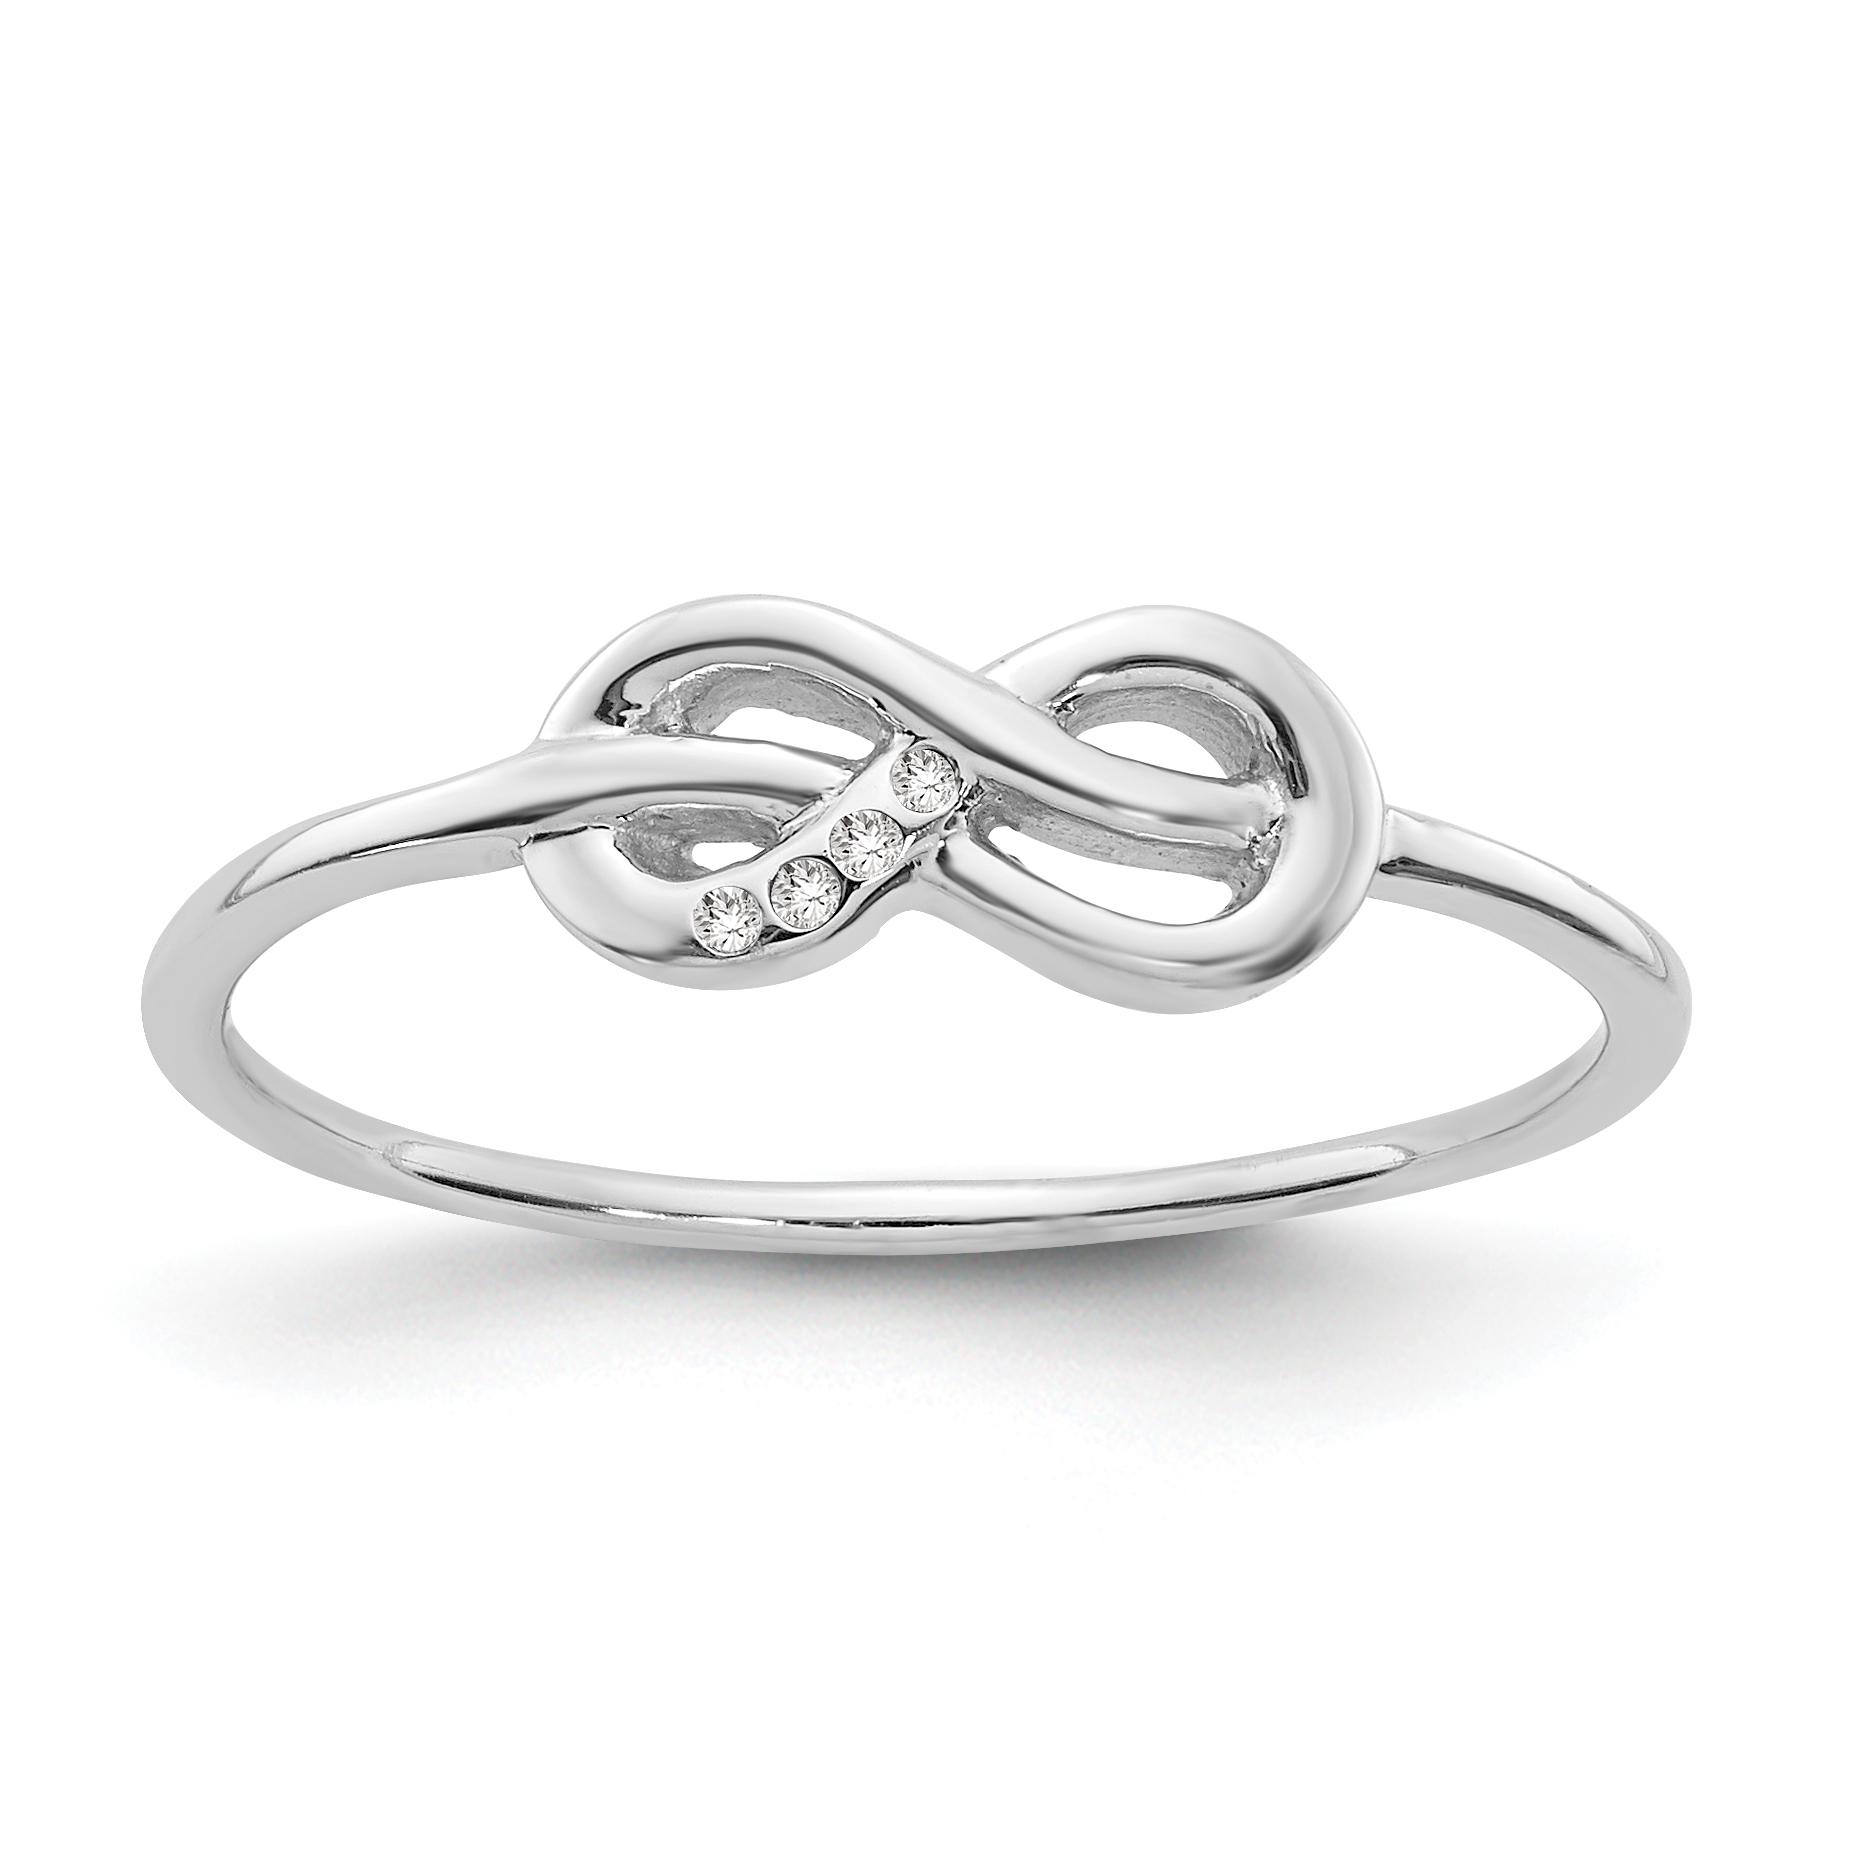 925 Sterling Silver Infinity Diamond Band Ring Size 8.00 Fine Jewelry Gifts For Women For Her - image 6 of 6